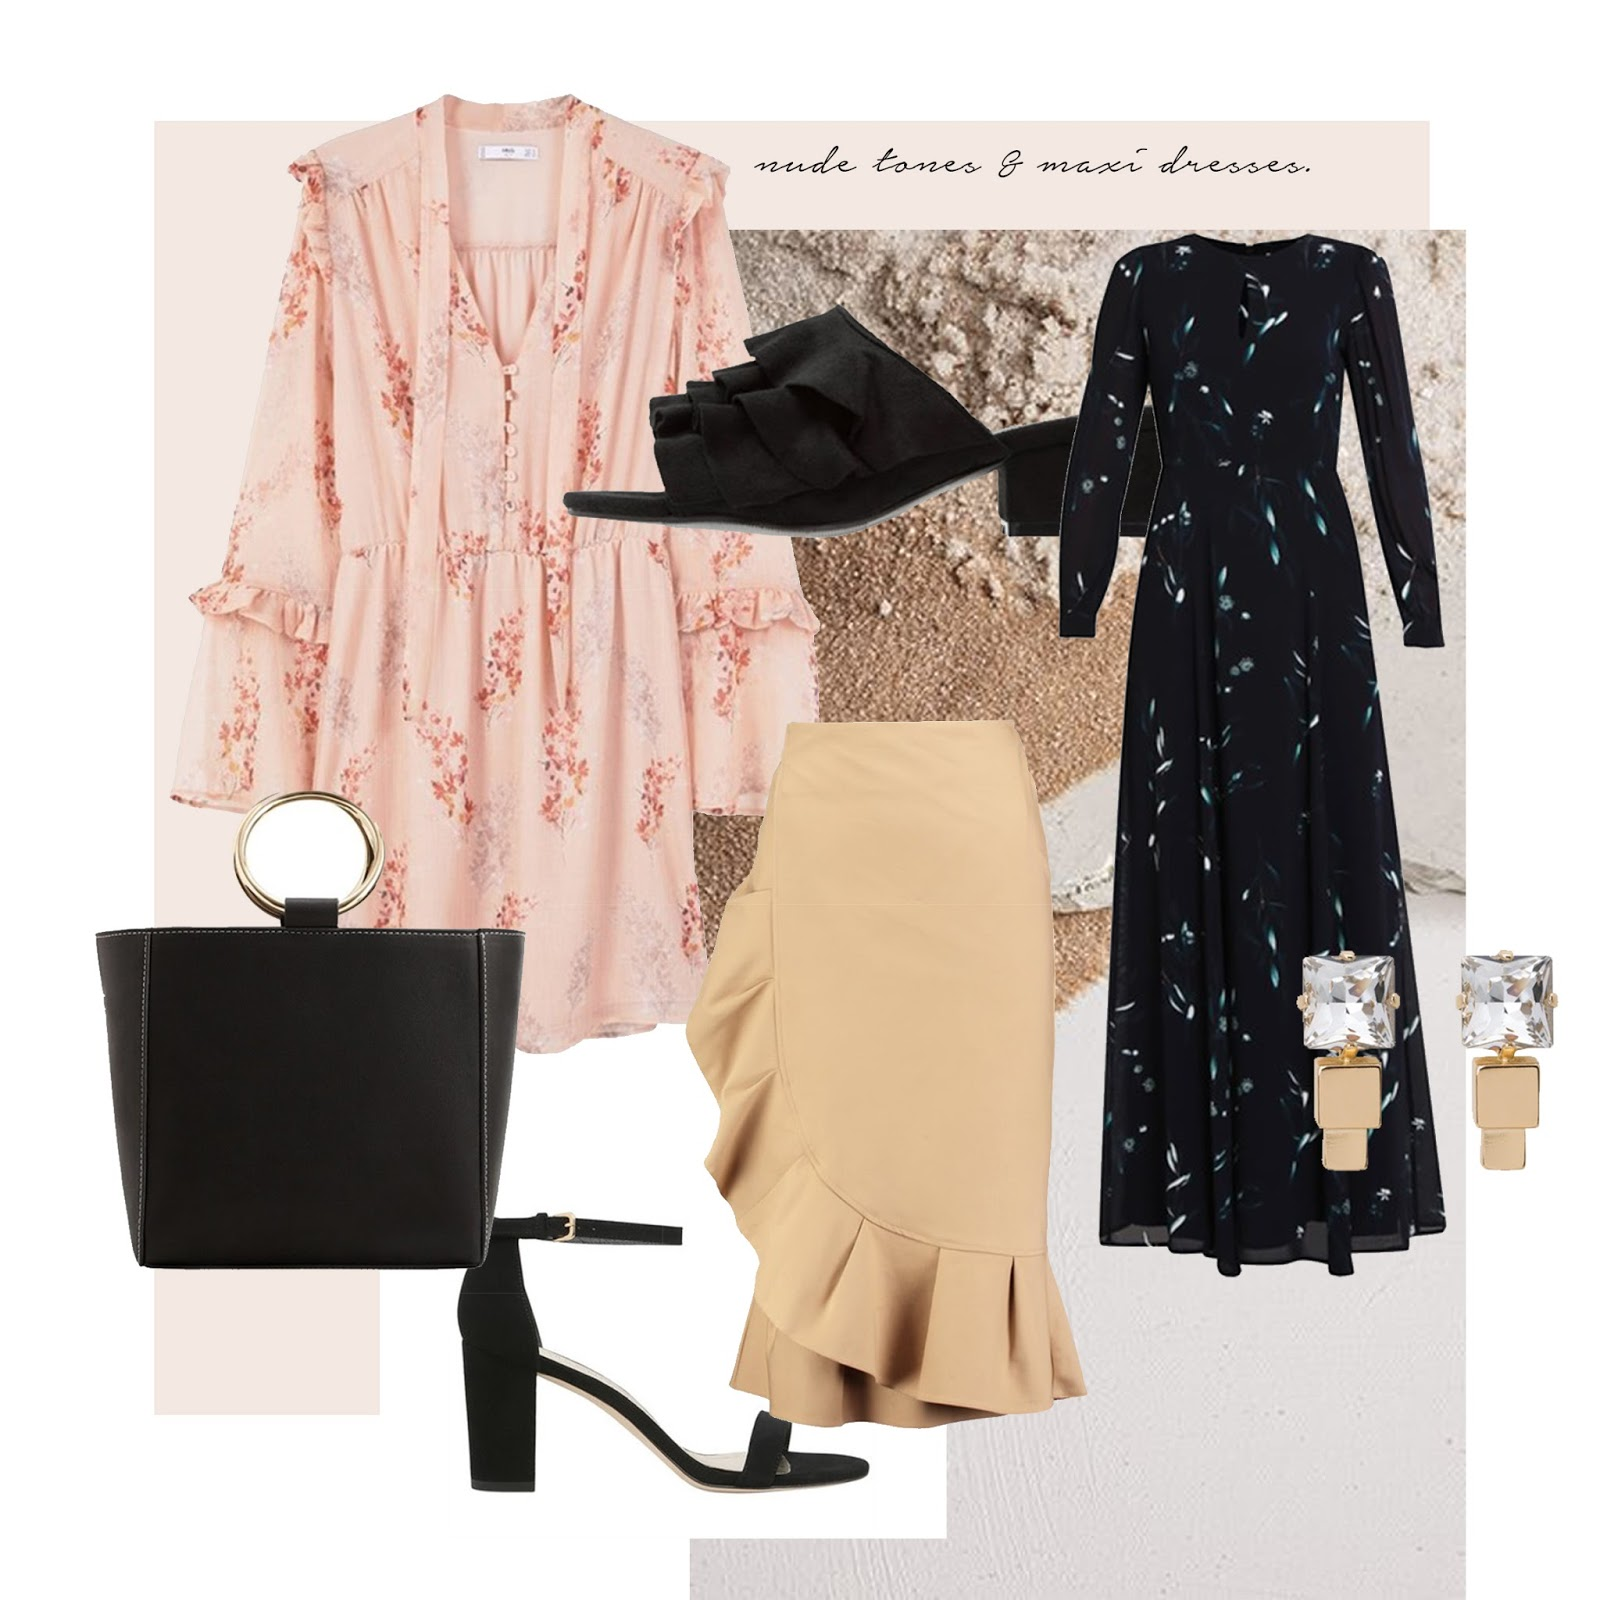 outfit / dresscode taufe - let them eat cotton candy